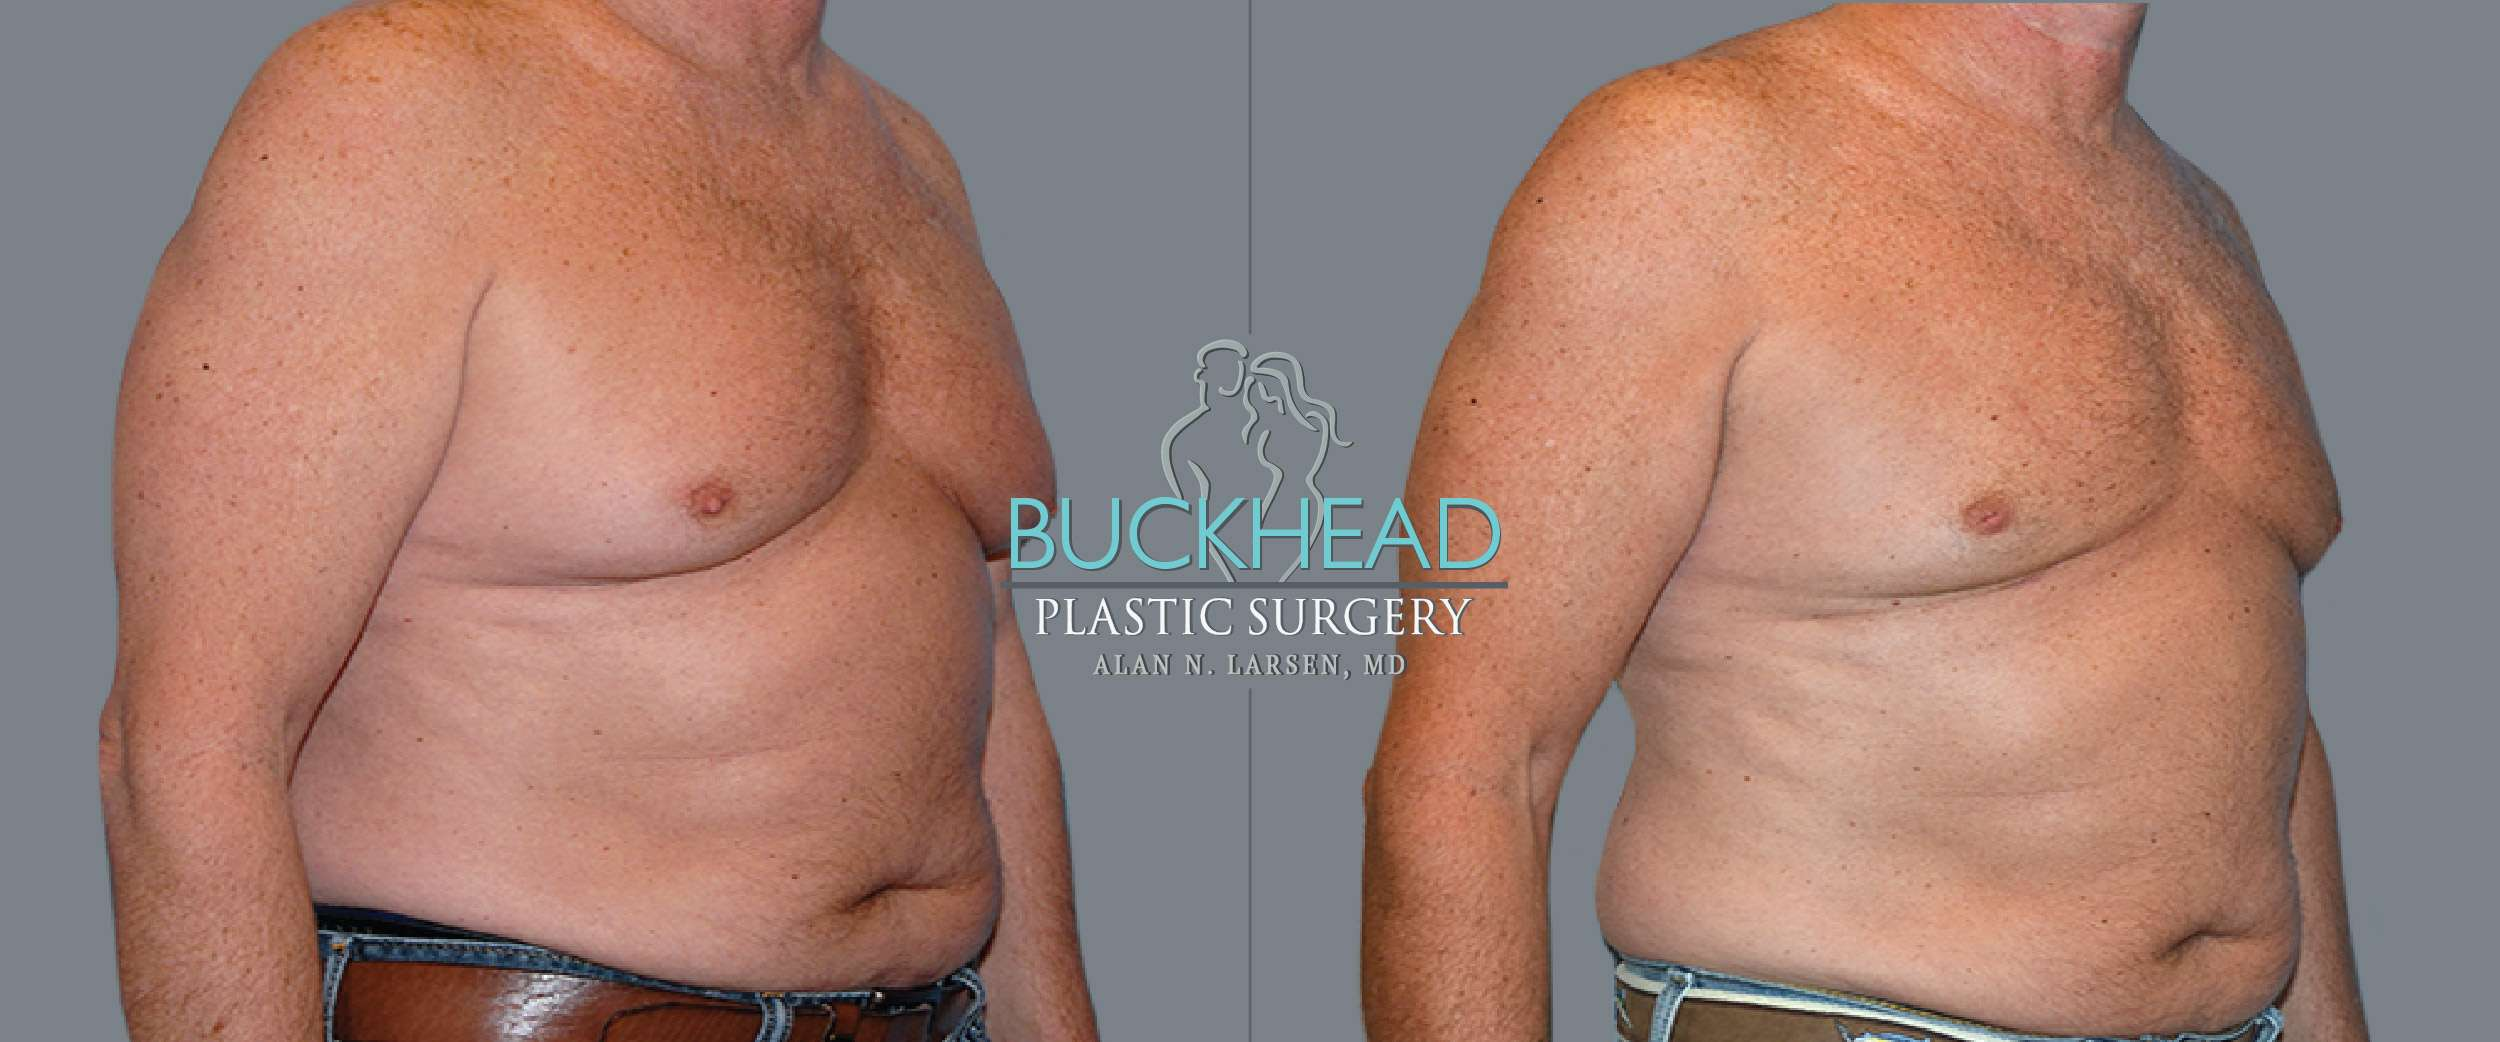 Before and After Photo Gallery | Gynecomastia - Male Breast Reduction & Correction | Buckhead Plastic Surgery | Board-Certified Plastic Surgeon in Atlanta GA